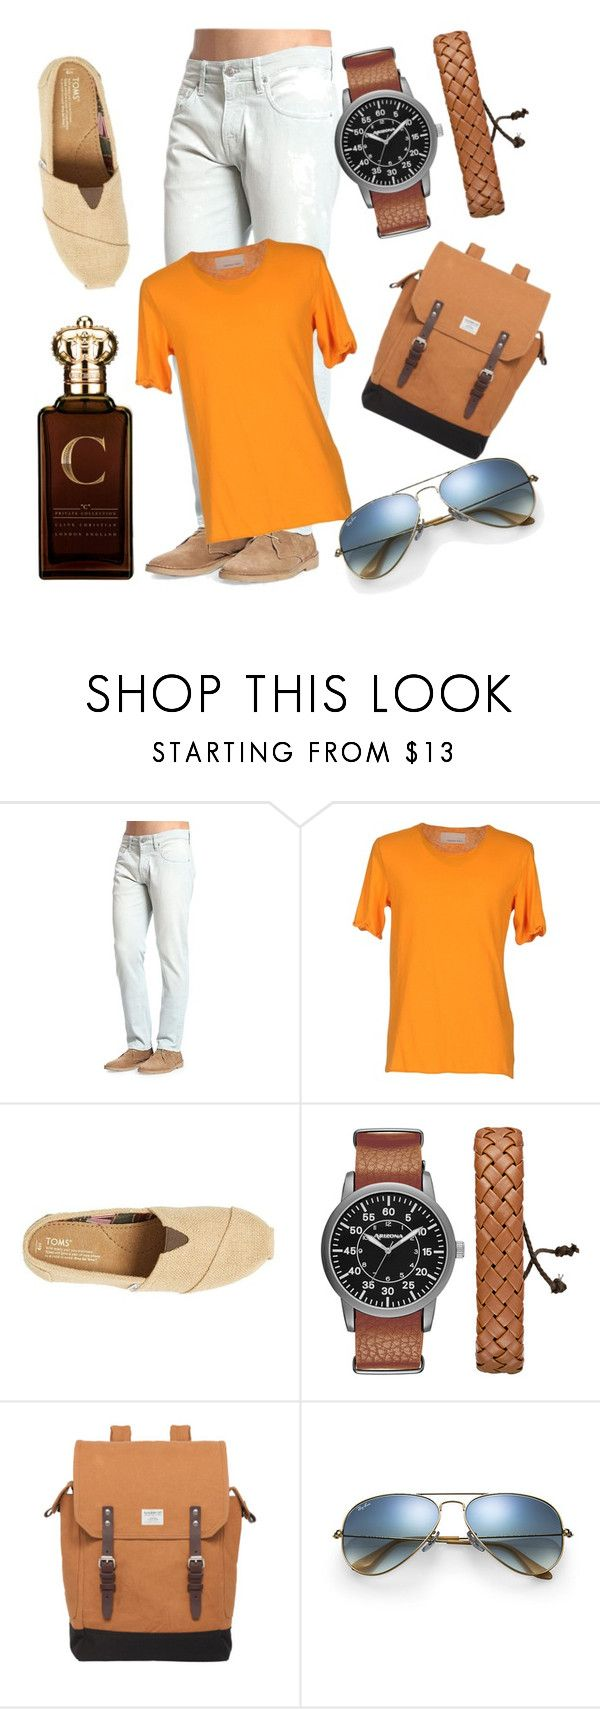 """Made By Bugg #3"" by nianotlong ❤ liked on Polyvore featuring Mavi, Happiness, TOMS, Arizona, Sandqvist, Ray-Ban, Clive Christian, men's fashion and menswear"